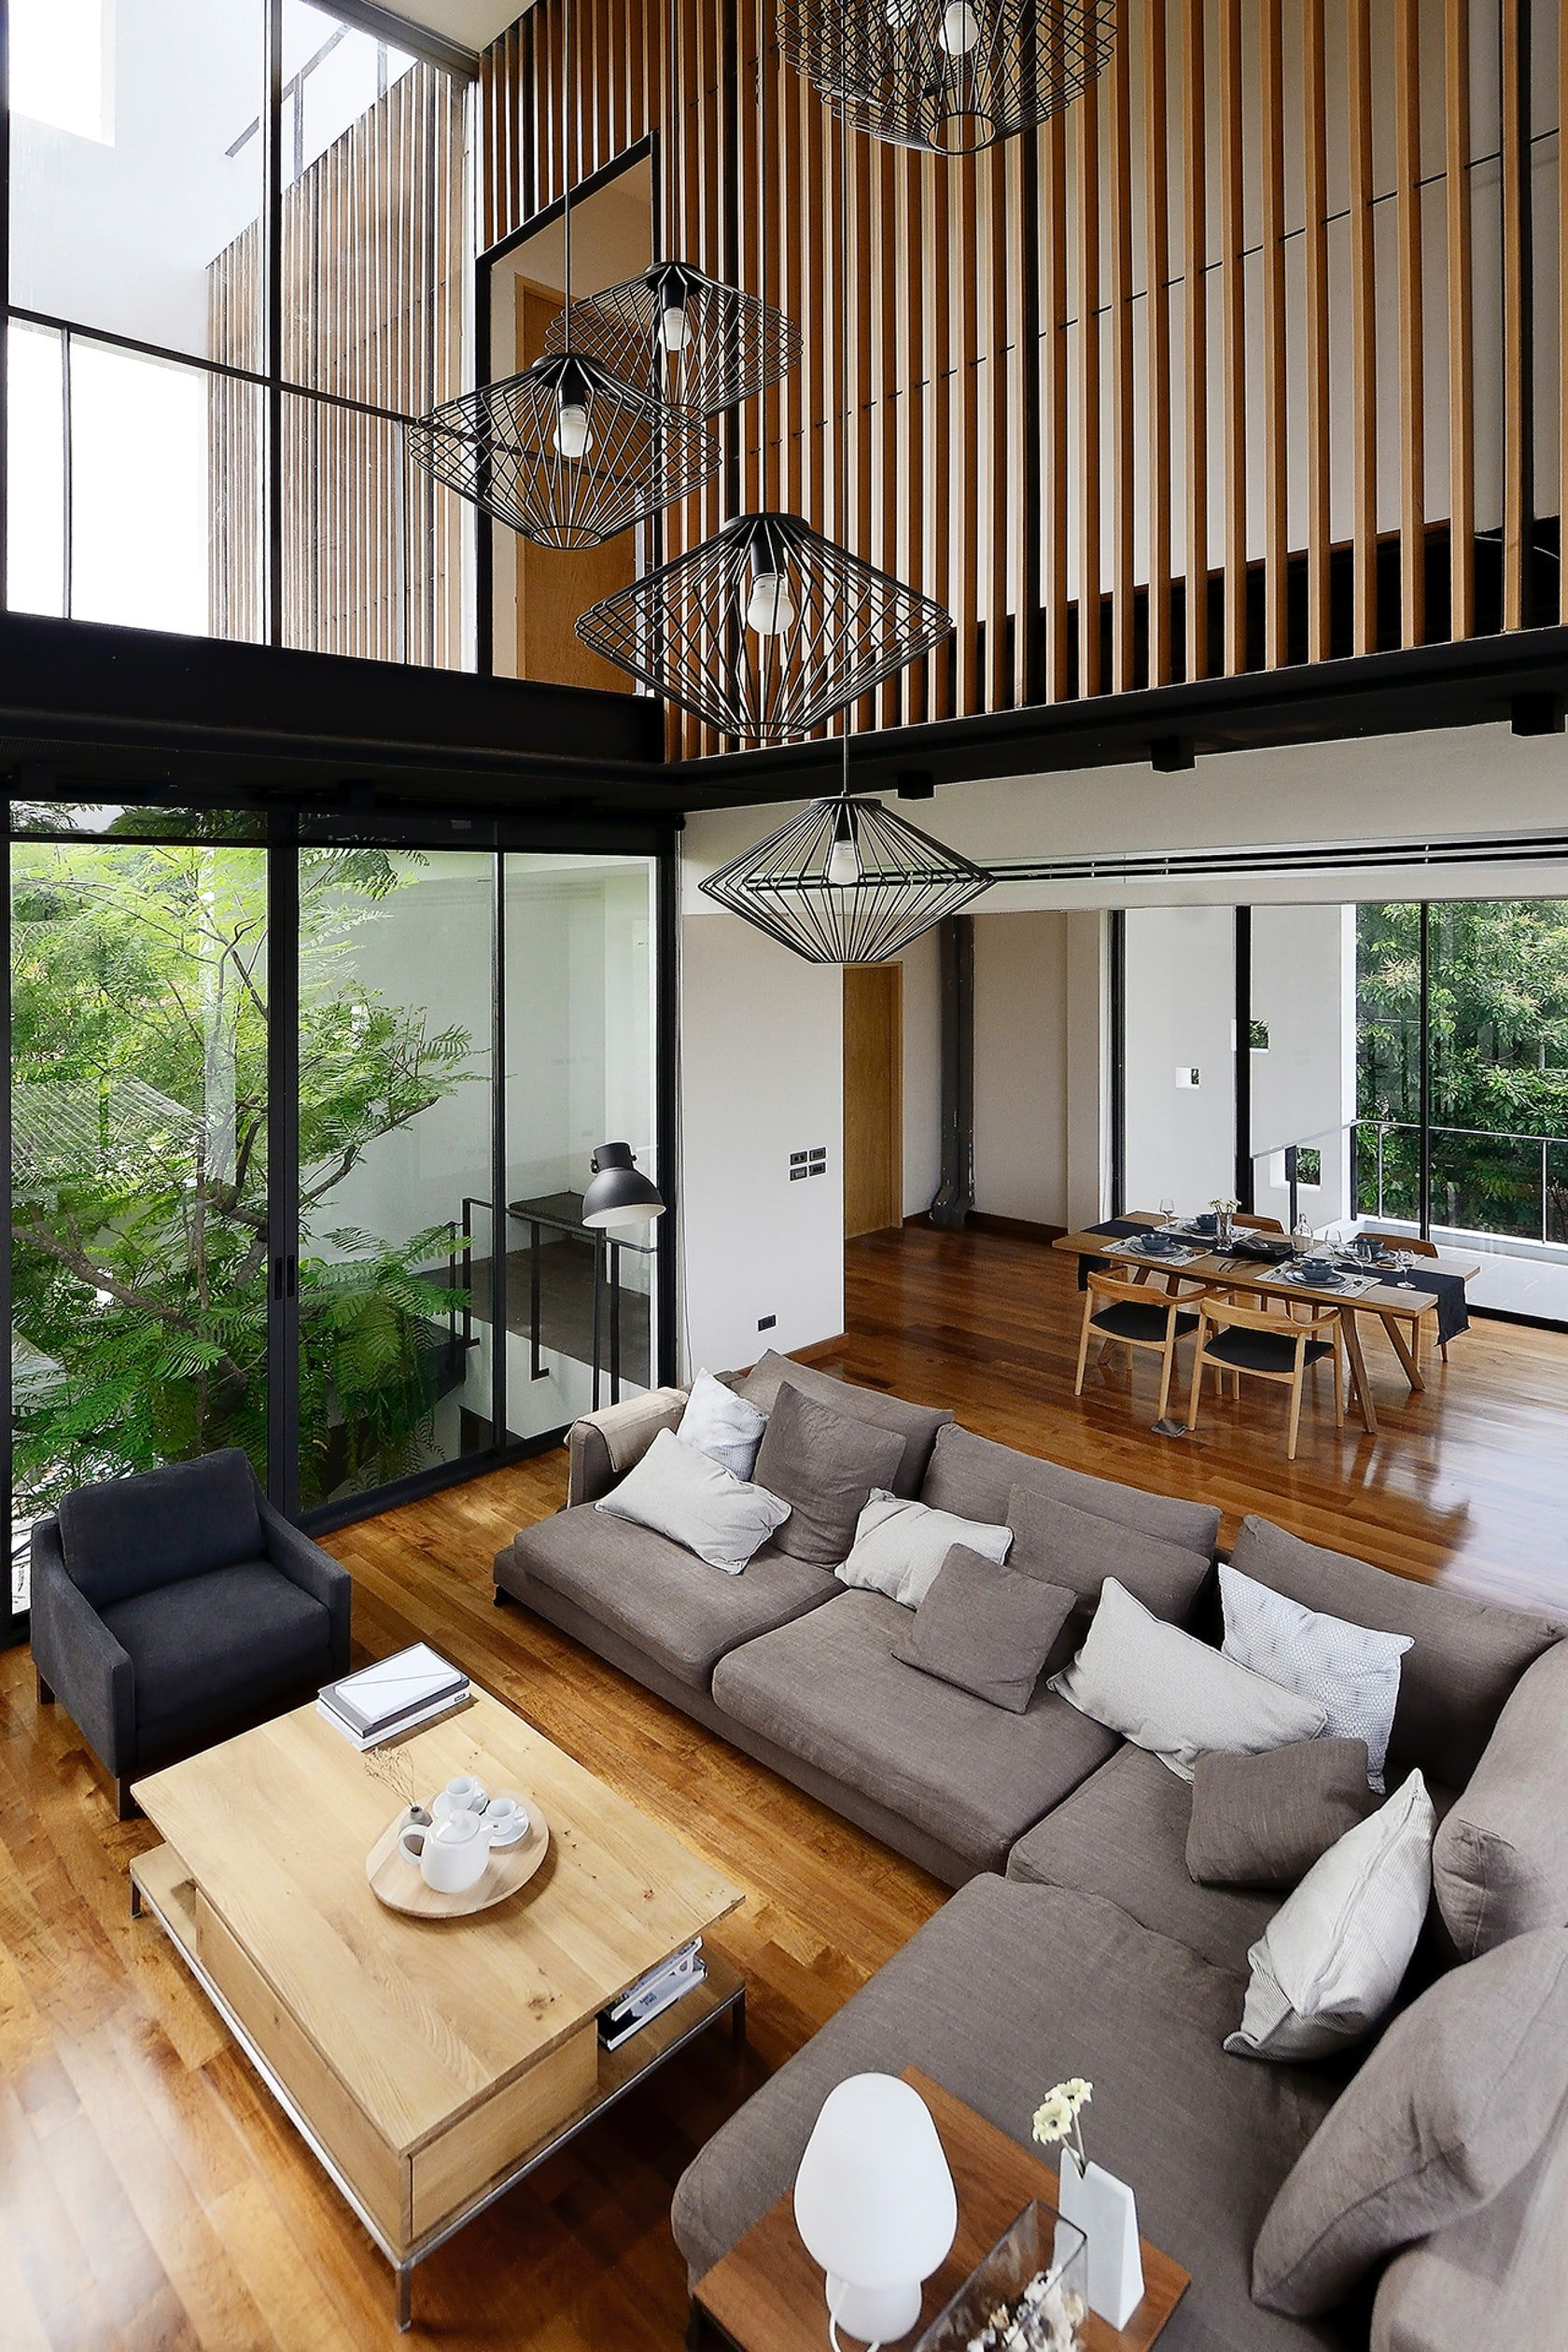 A House For A Photographer And A Landscape Designer Aperture House Frames Its Surrounding Natures Modern House Design High Ceiling Living Room Interior Design